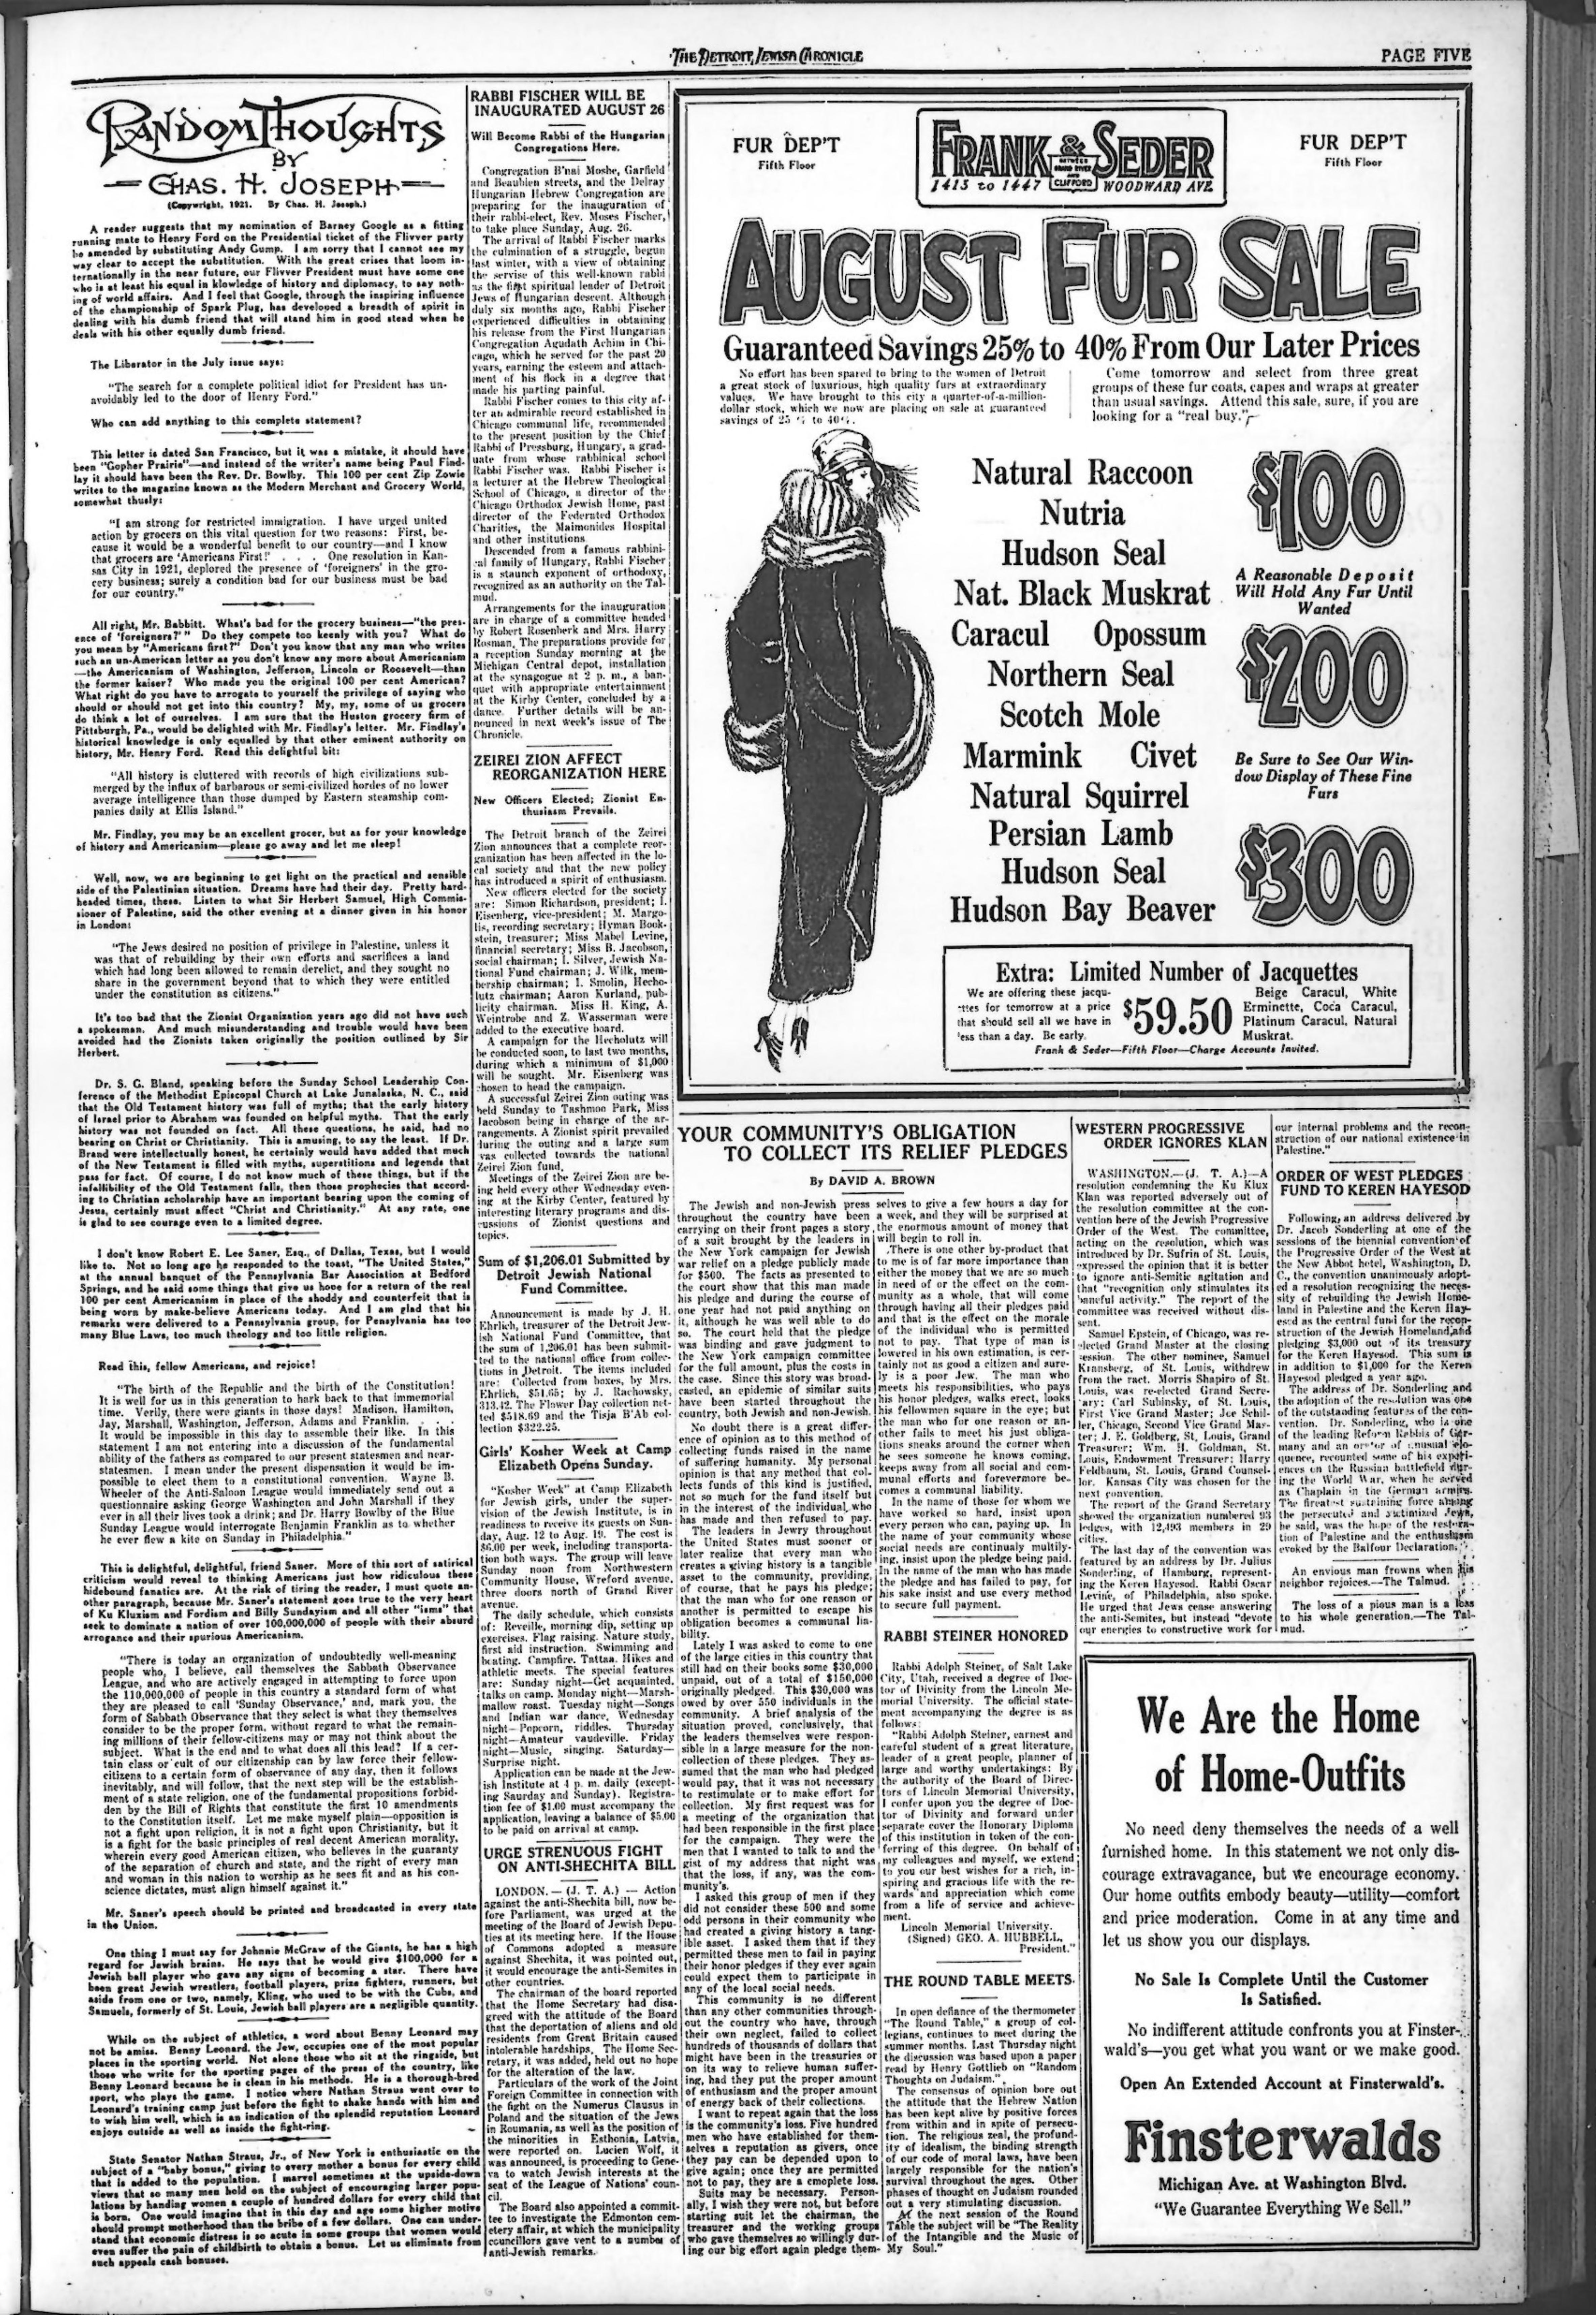 100 Americanism the detroit jewish news digital archives - august 10, 1923